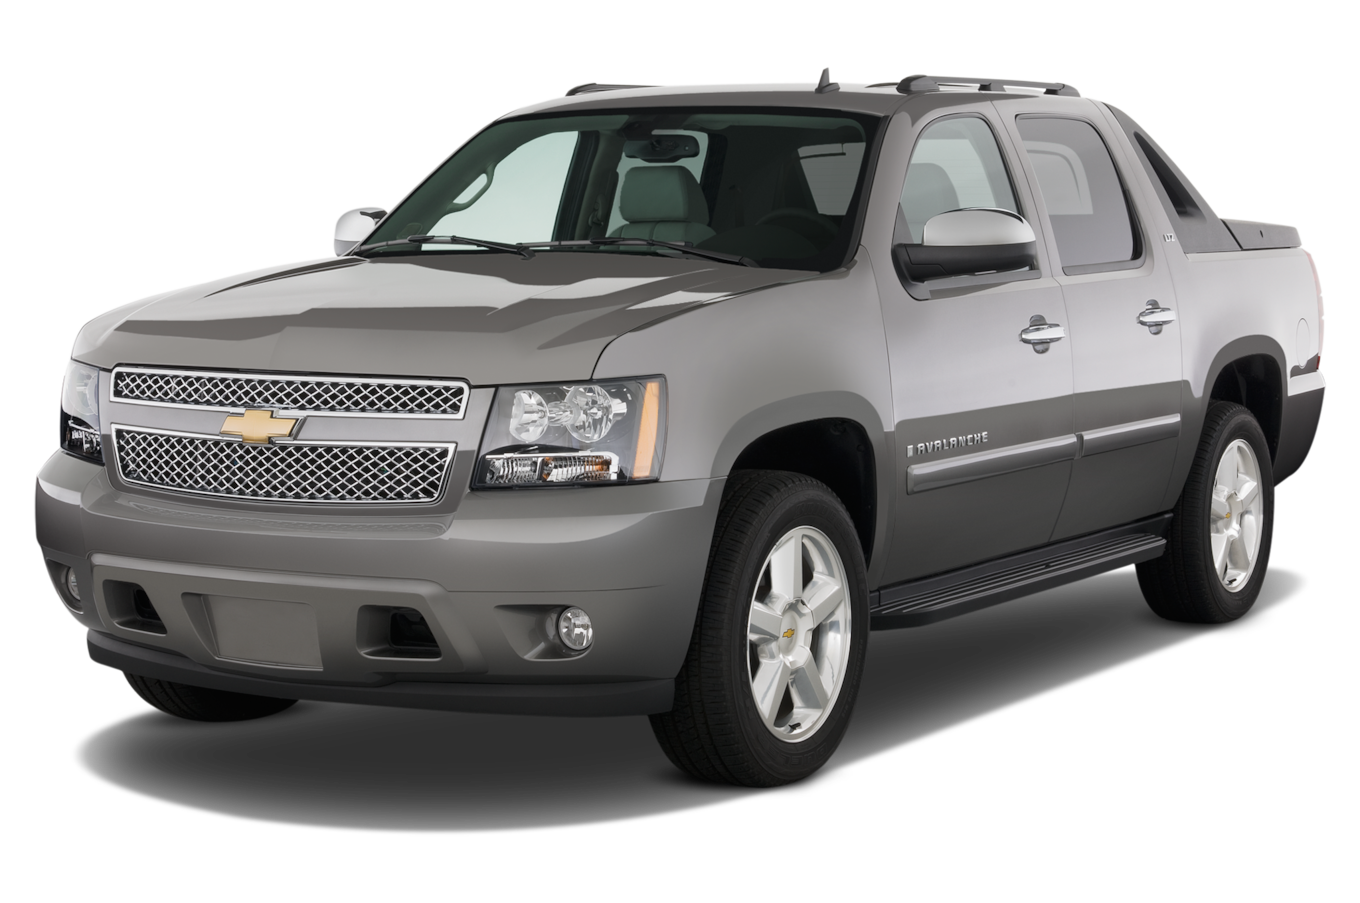 2013 Chevrolet Avalanche Reviews And Rating Chevrolet Chevrolet